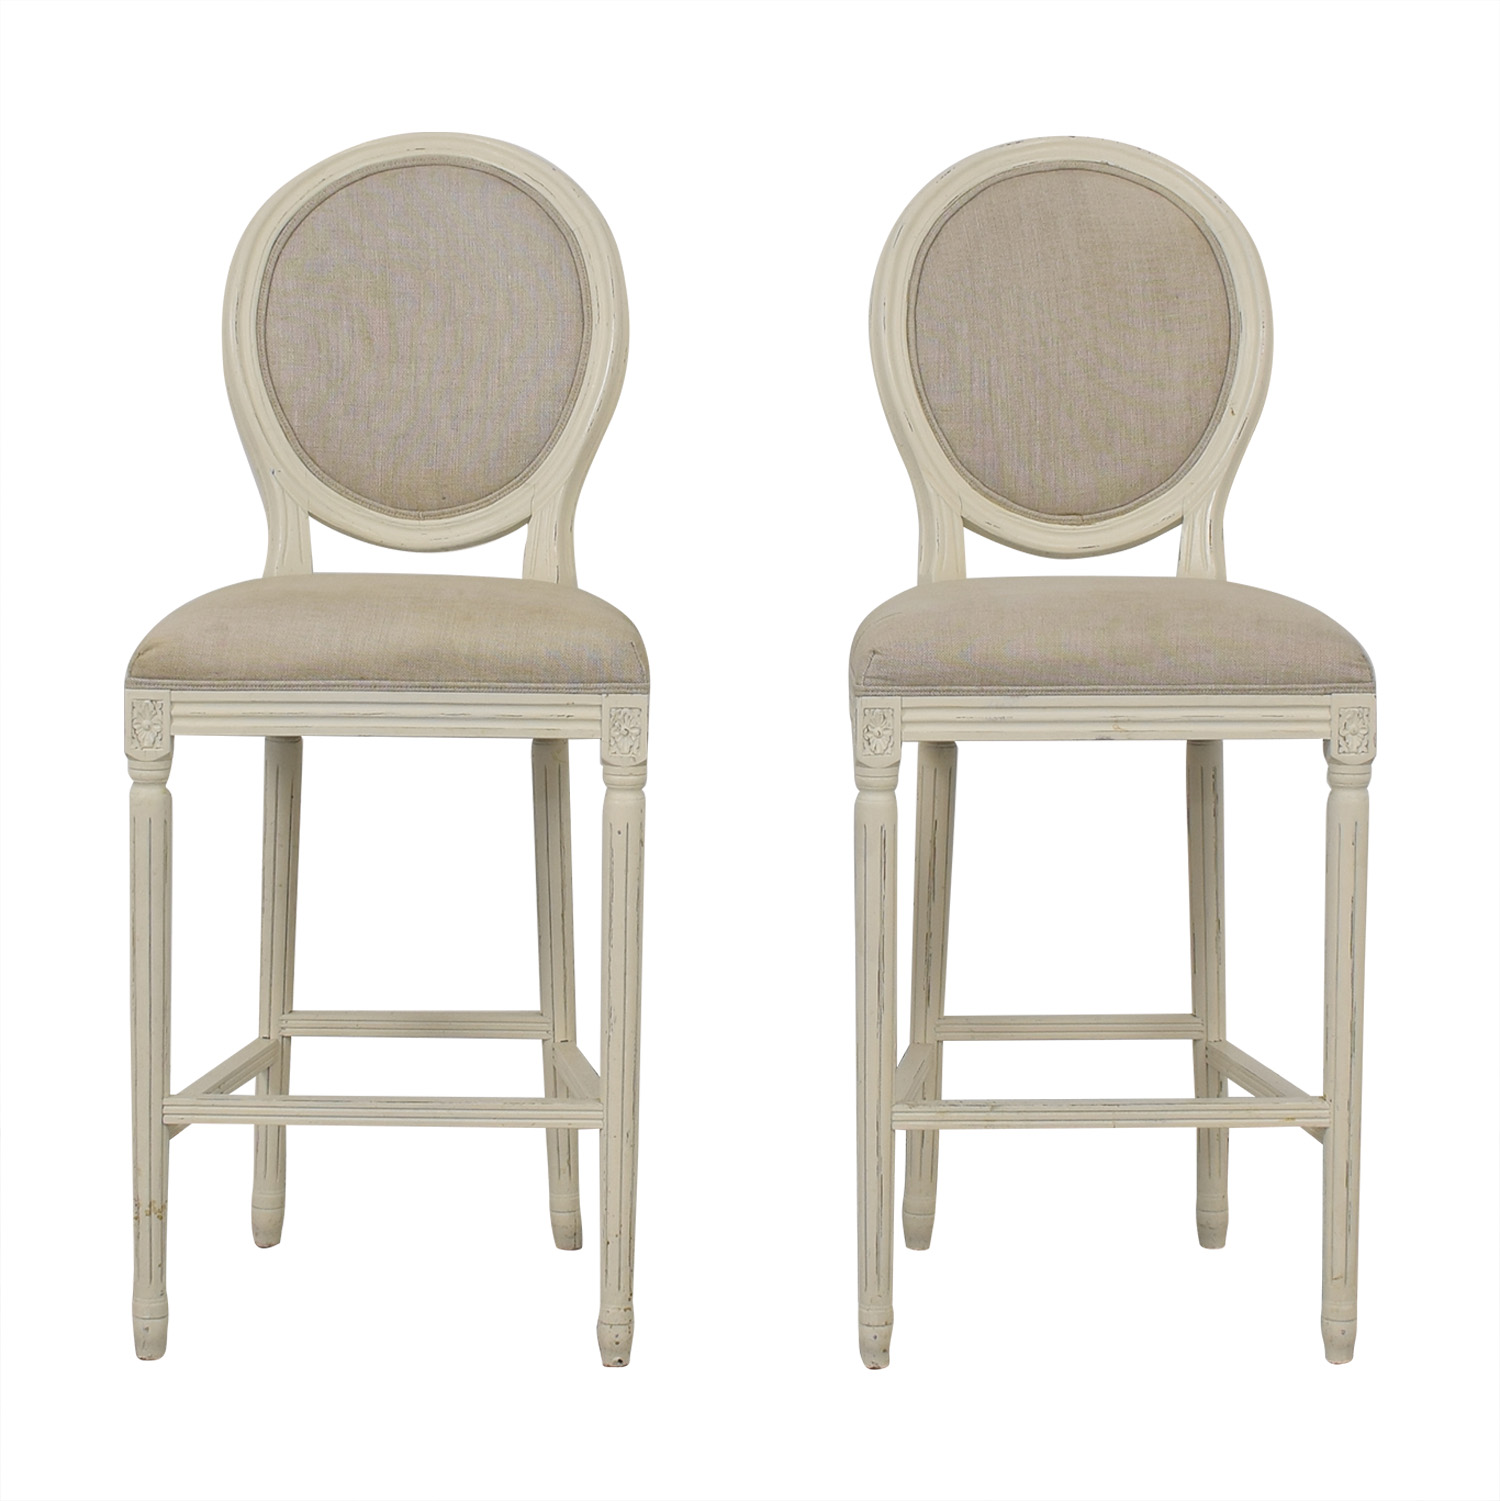 buy Restoration Hardware Restoration Hardware Vintage French Round Fabric Stools online